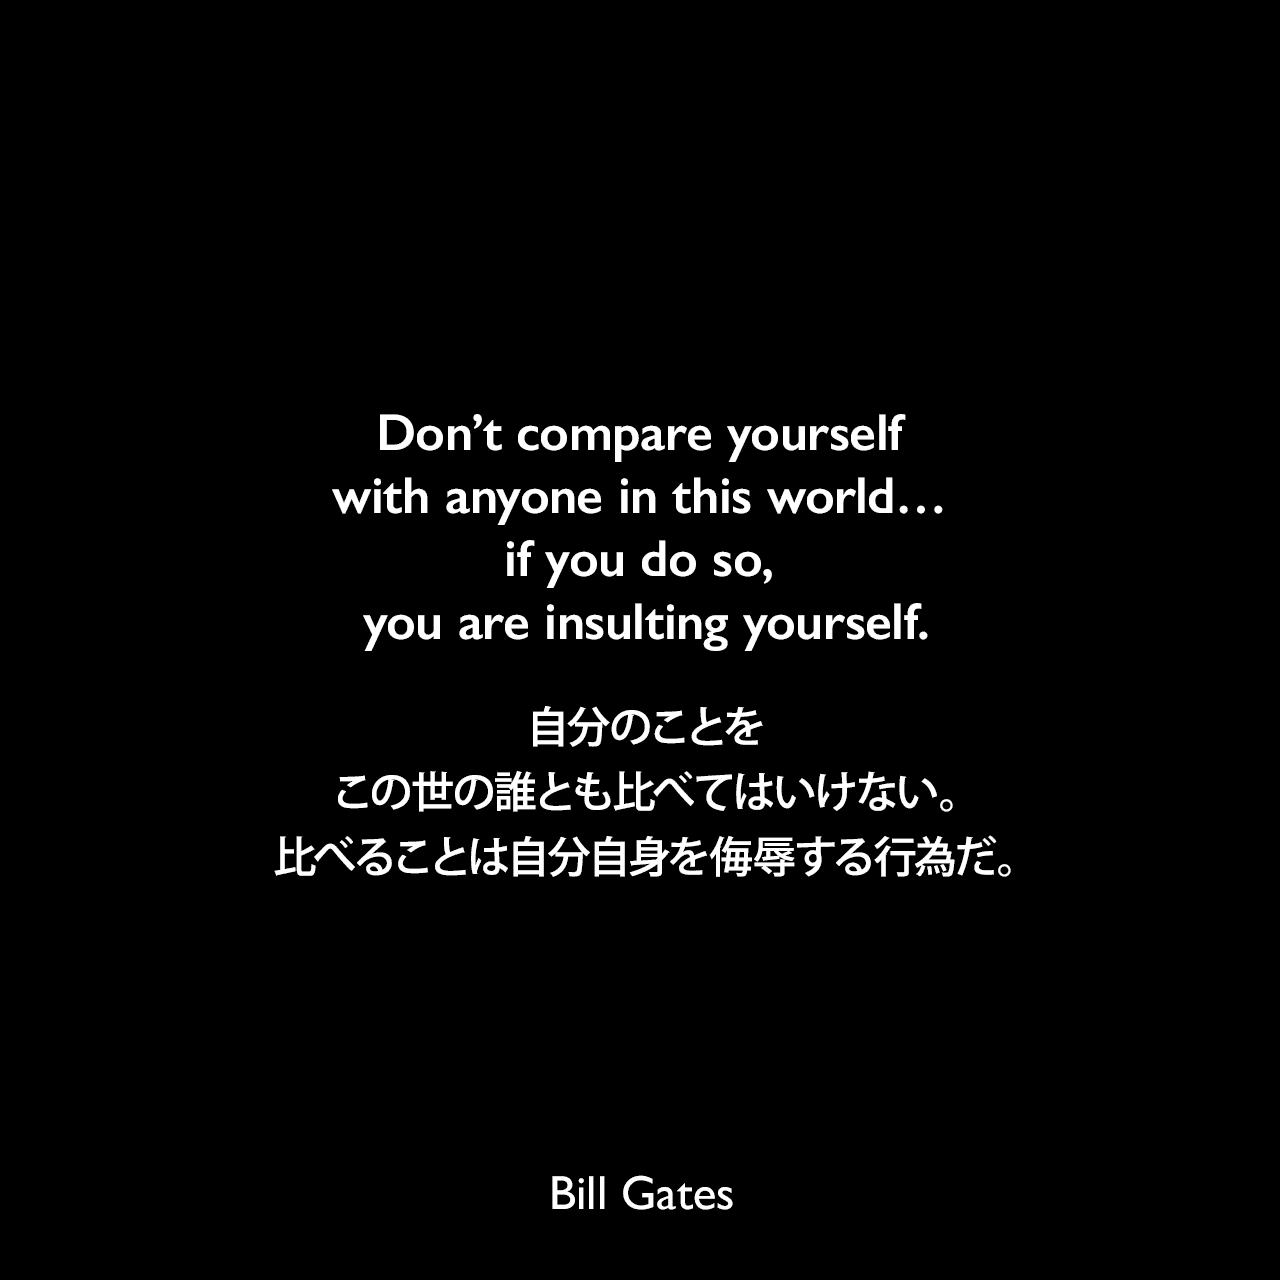 Don't compare yourself with anyone in this world… if you do so, you are insulting yourself.自分のことを、この世の誰とも比べてはいけない。比べることは自分自身を侮辱する行為だ。